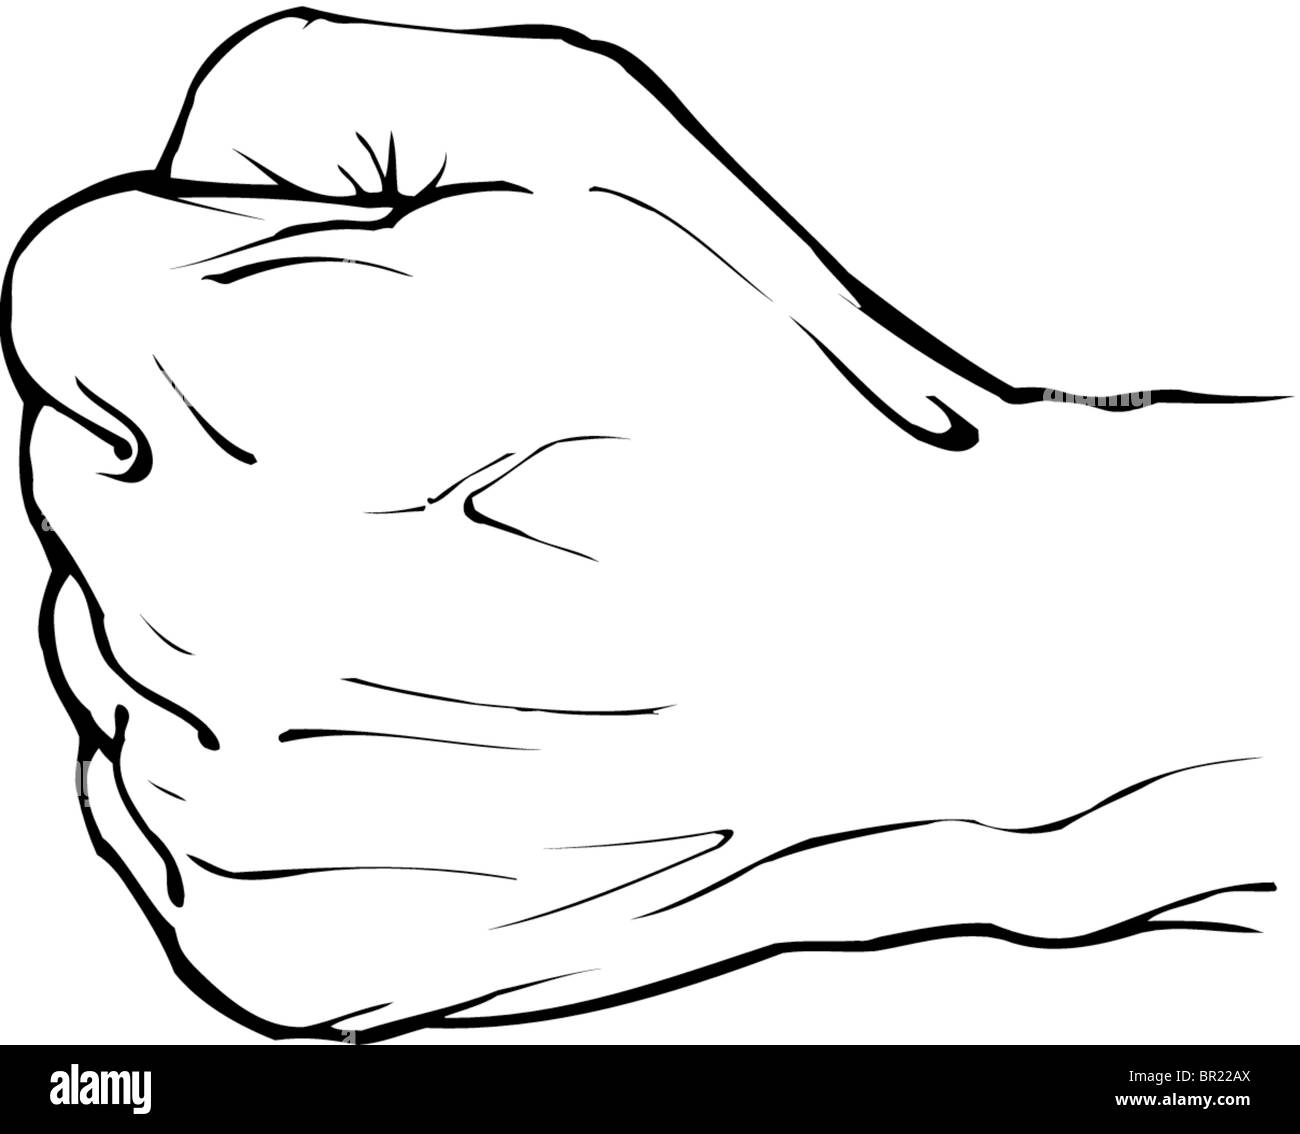 A black and white drawing of a closed fist stock image